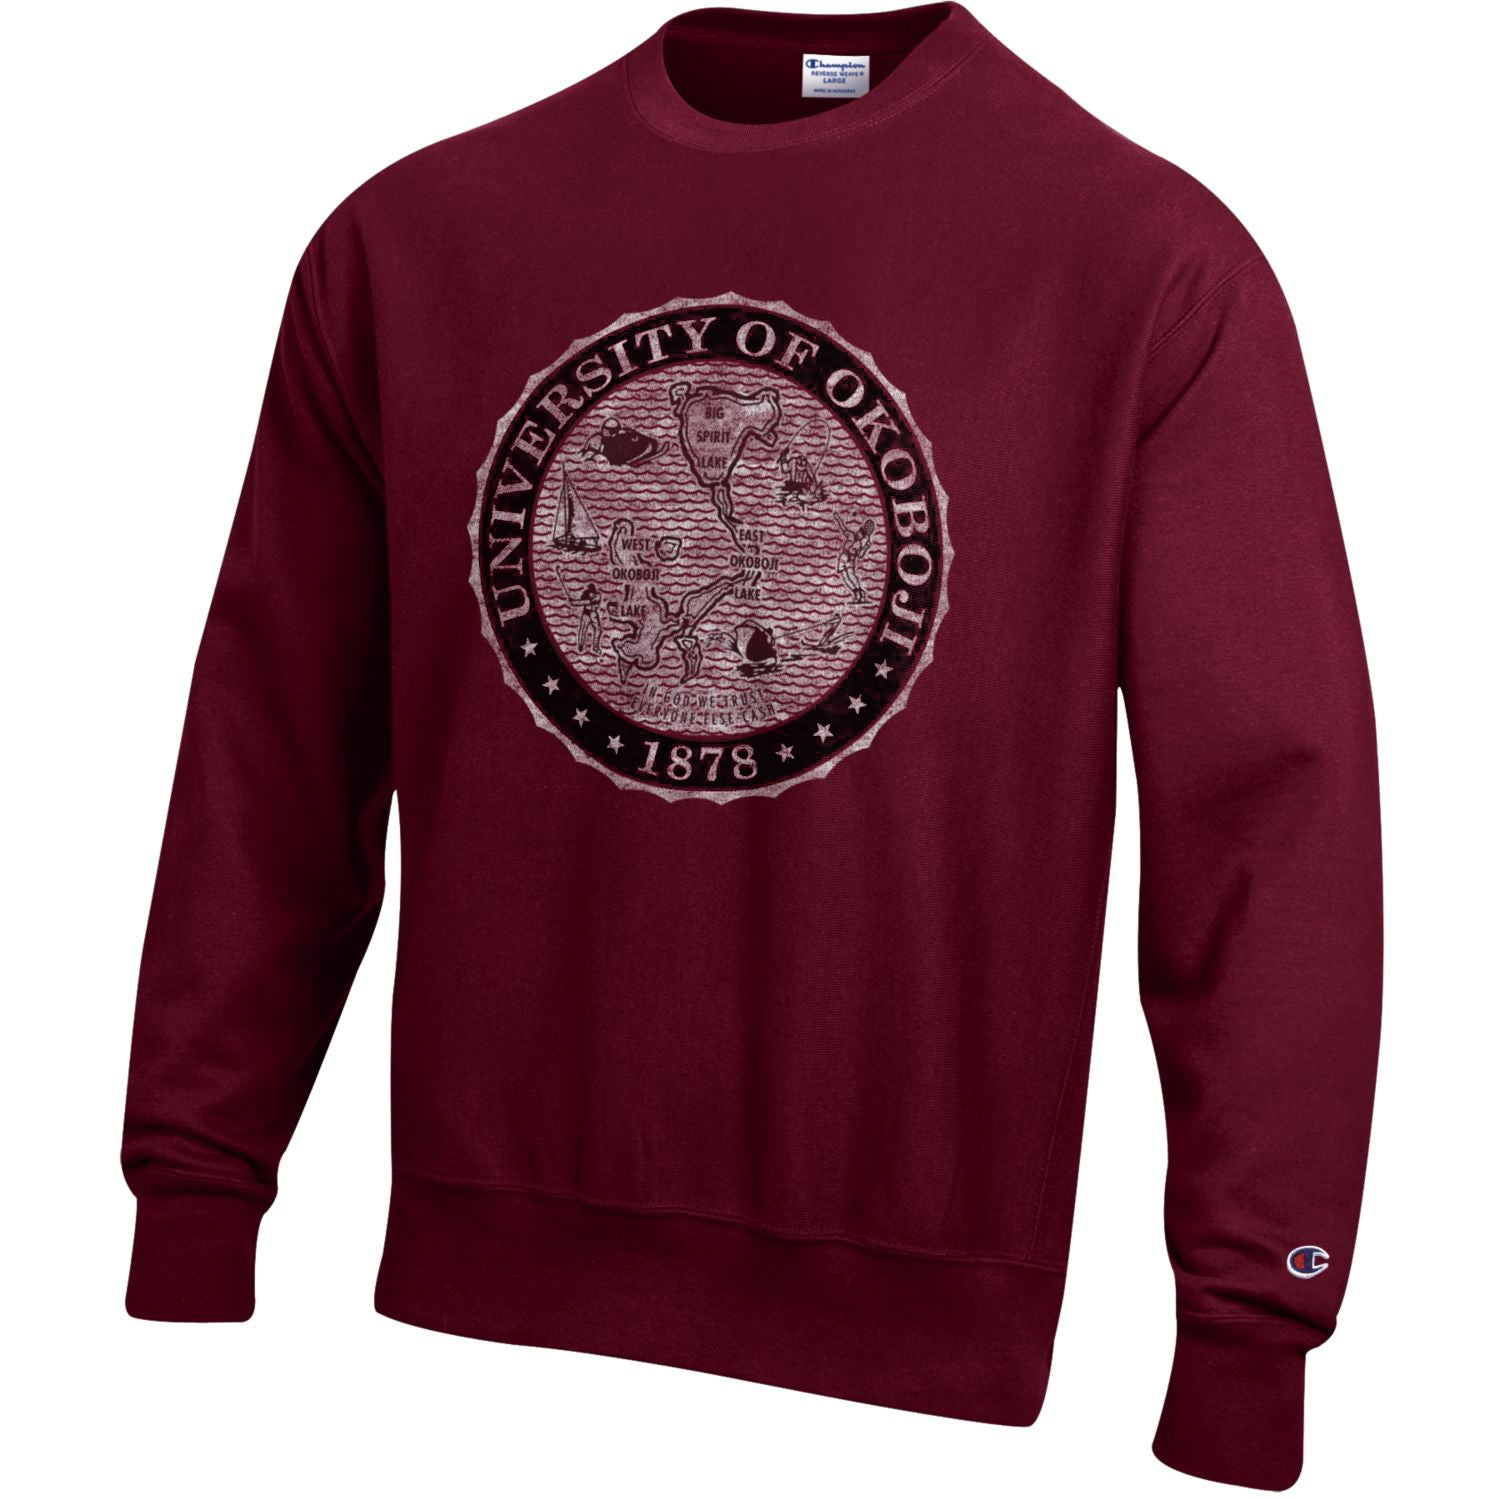 The Maroon Champion Reverse Weave Crest Crew